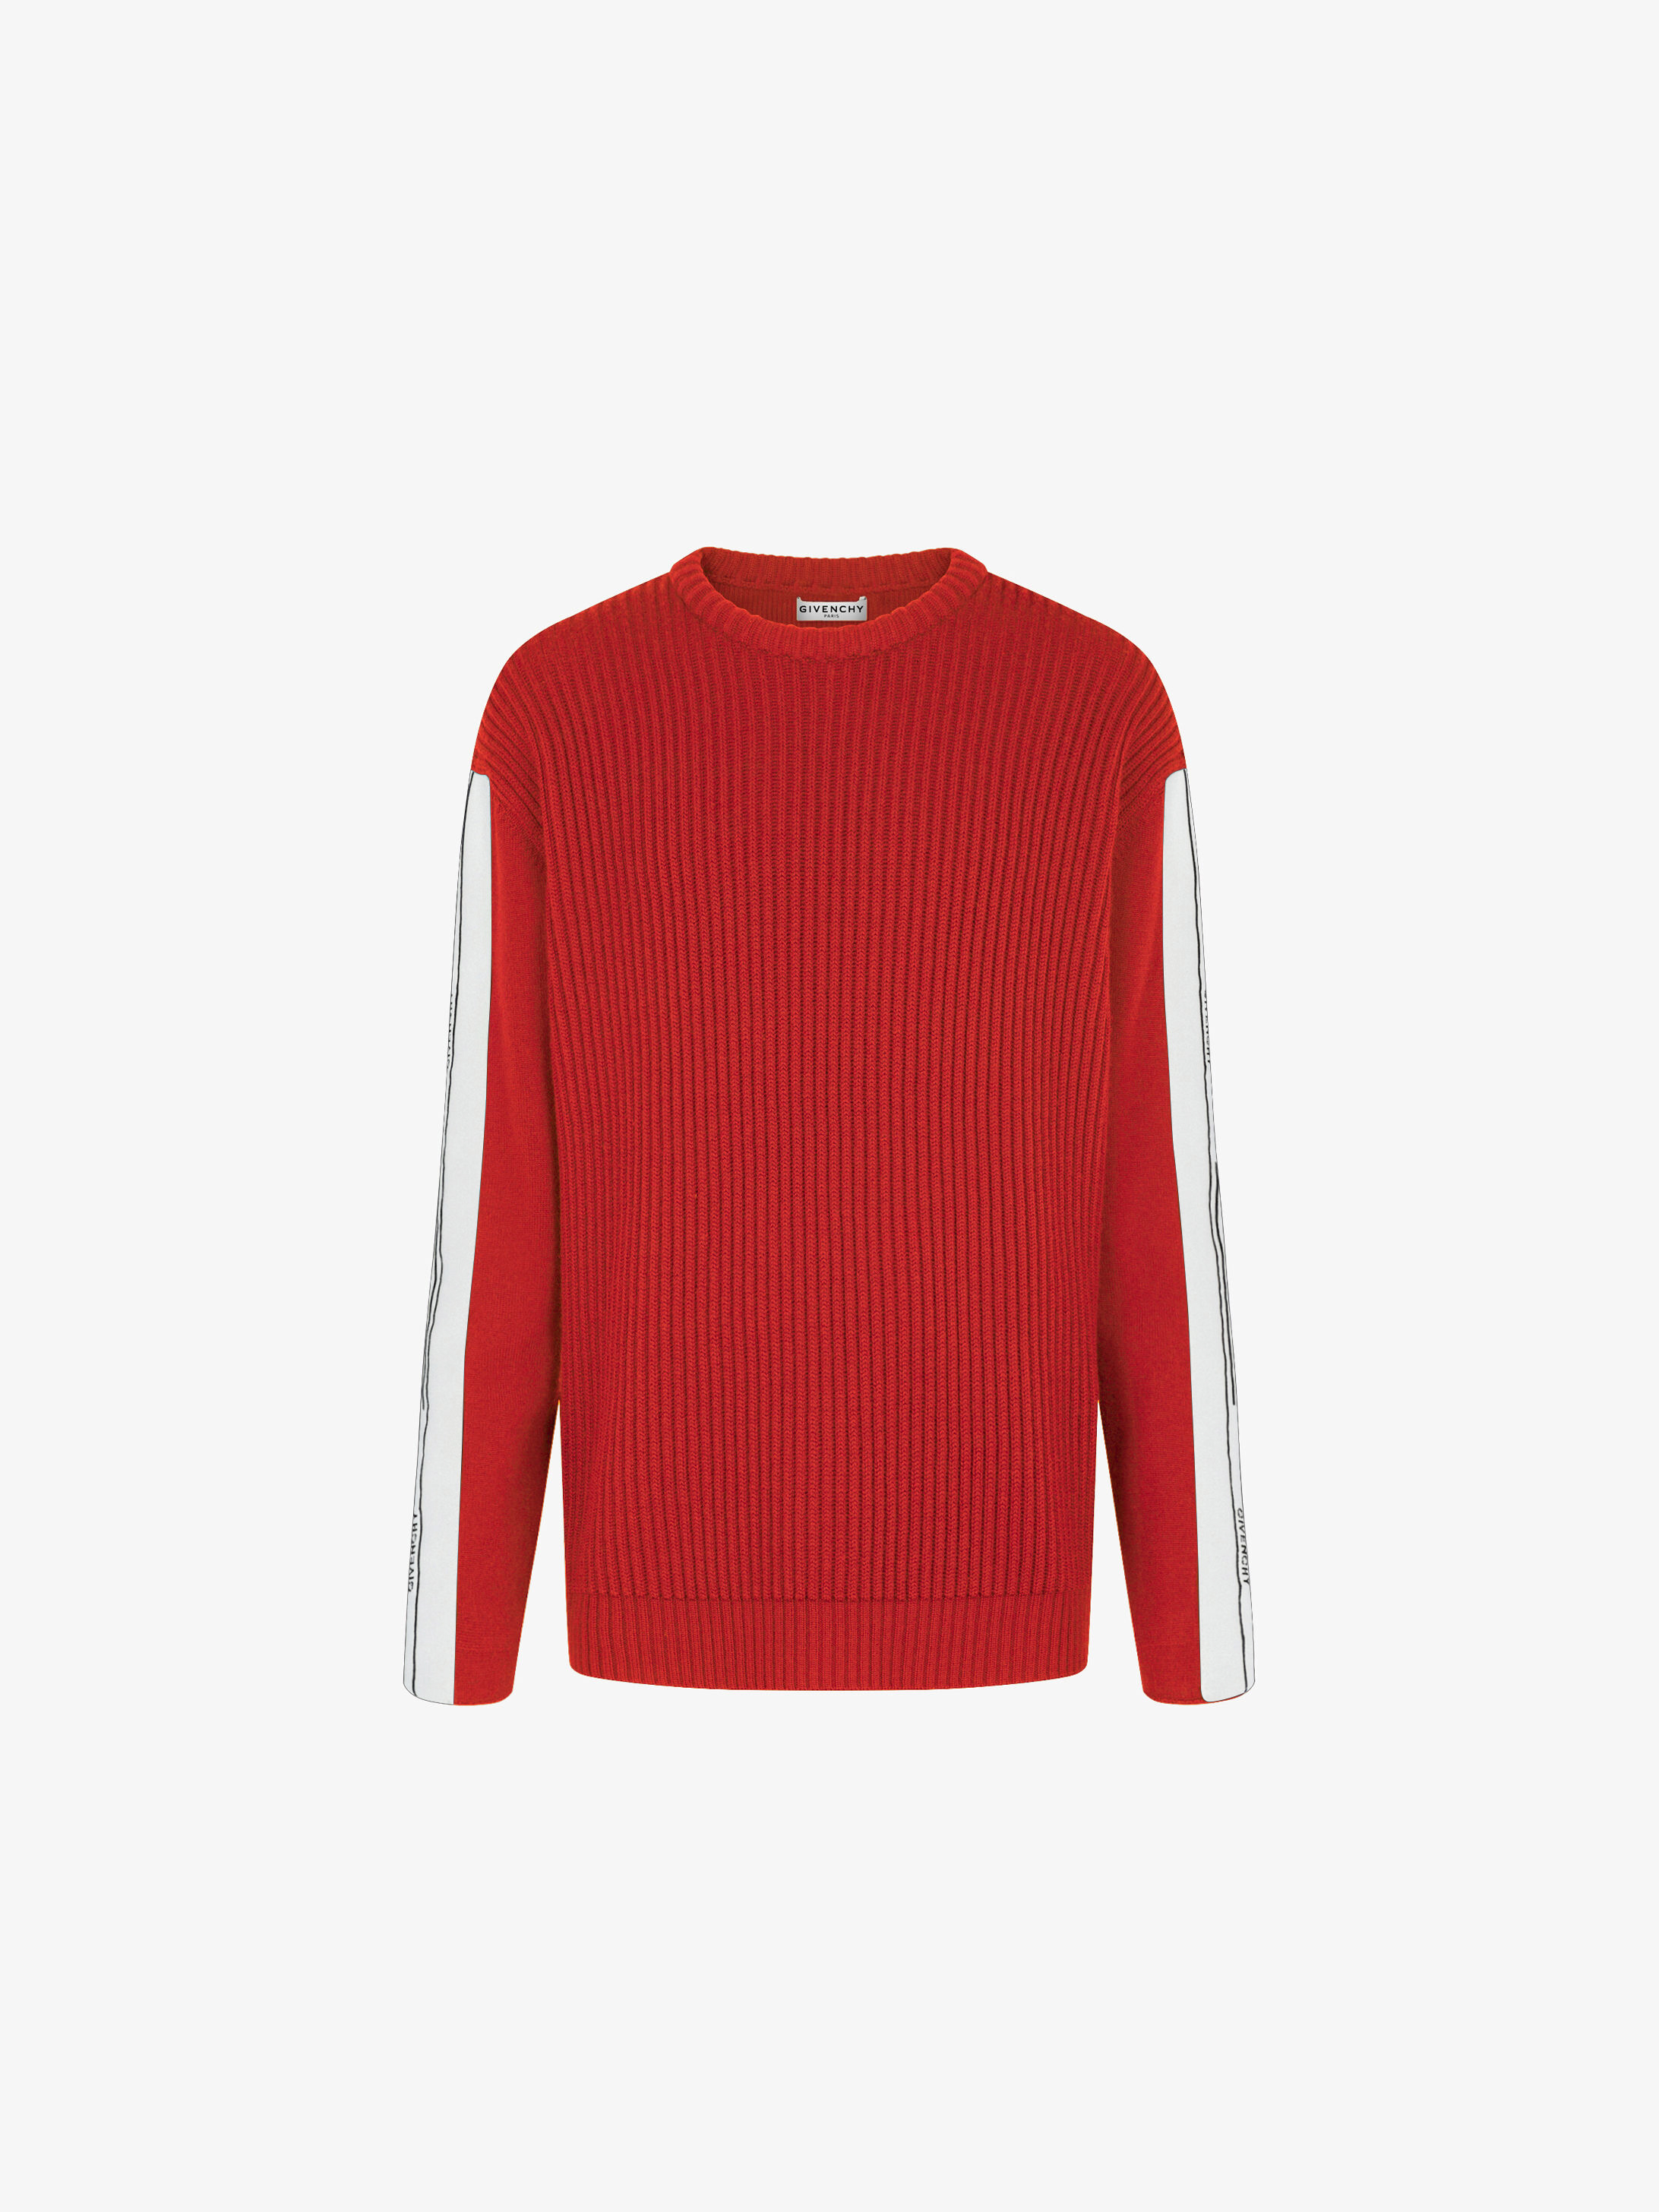 GIVENCHY band heavy sweater